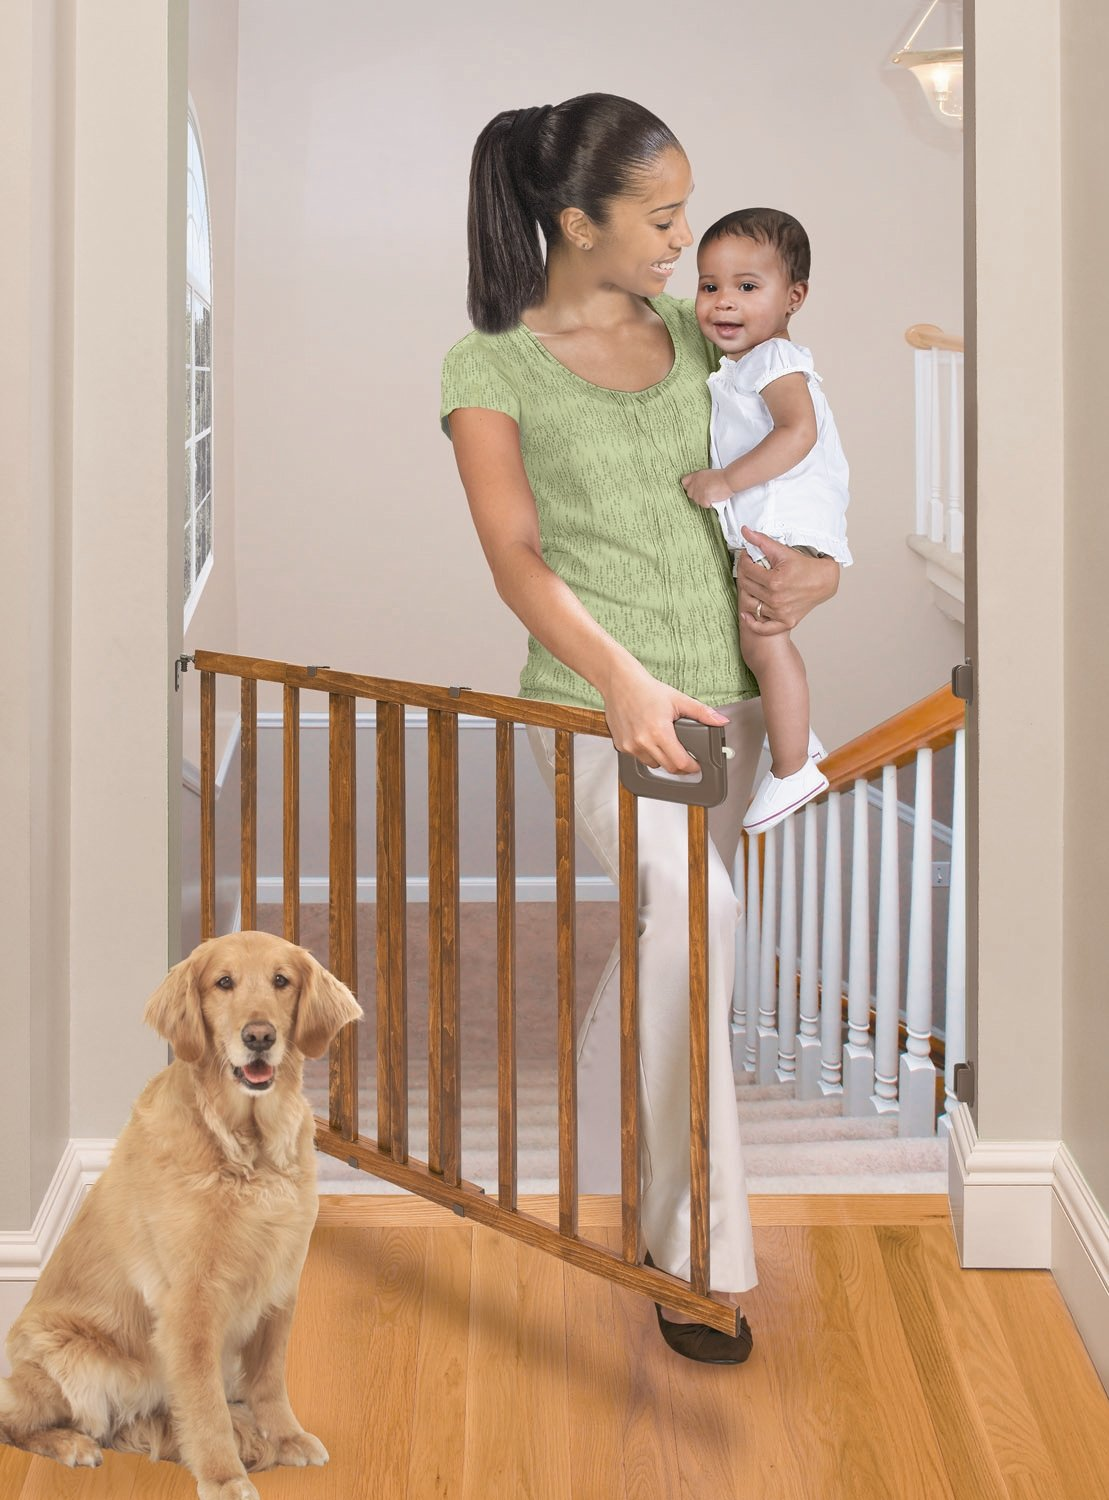 summer infant stylish and secure deluxe wood stairway gate na   - summer infant stylish and secure deluxe wood stairway gate na packamazonca baby